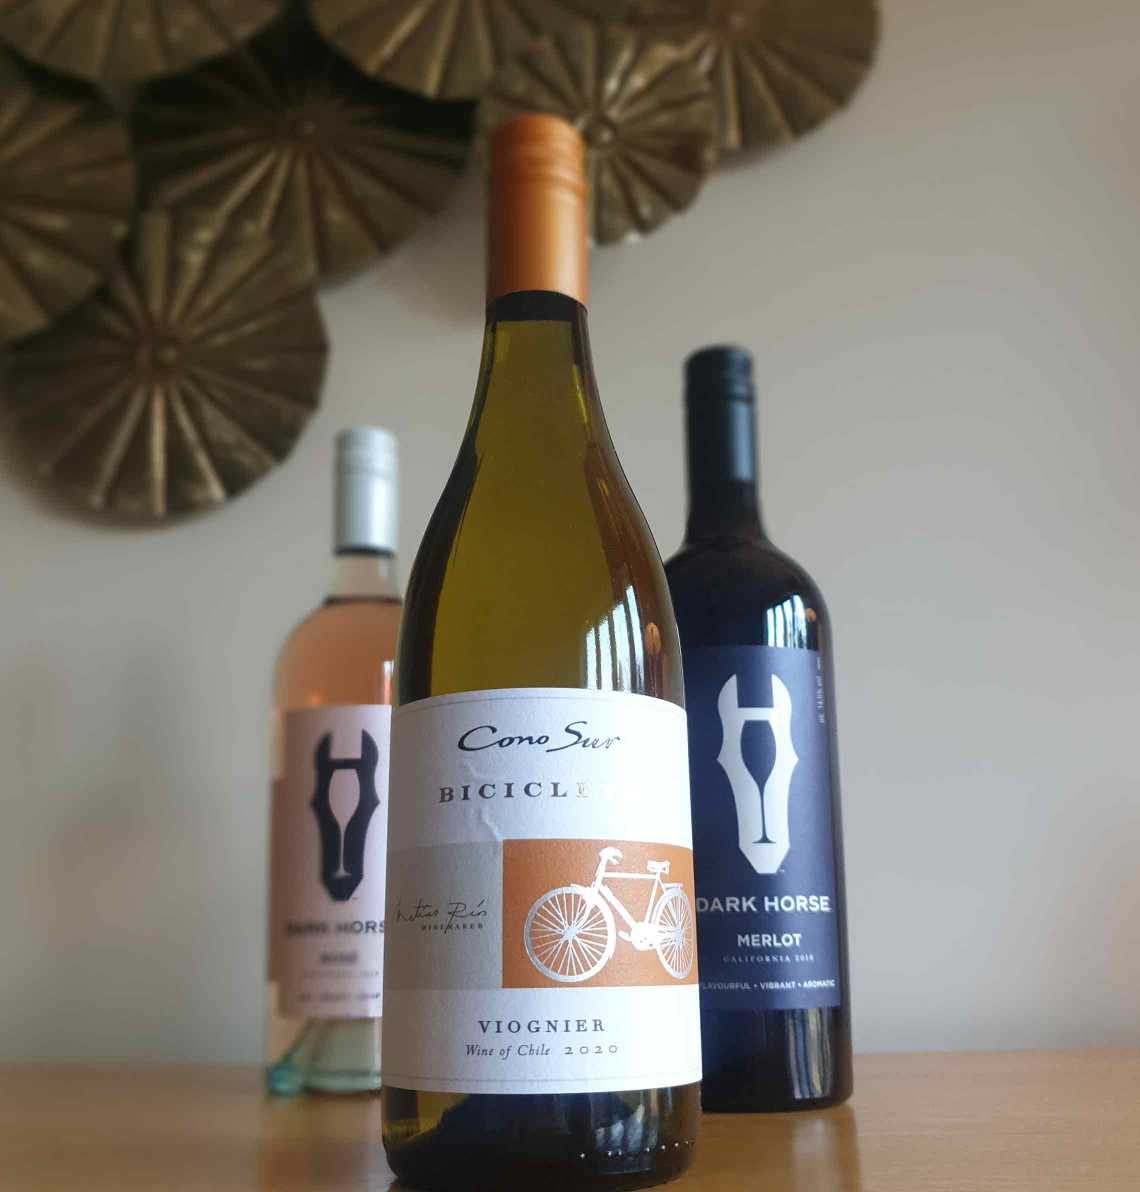 A bottle of Cono Sur Bicicleta Viogner white wine. The Best Foodie Mother's Day Gifts.